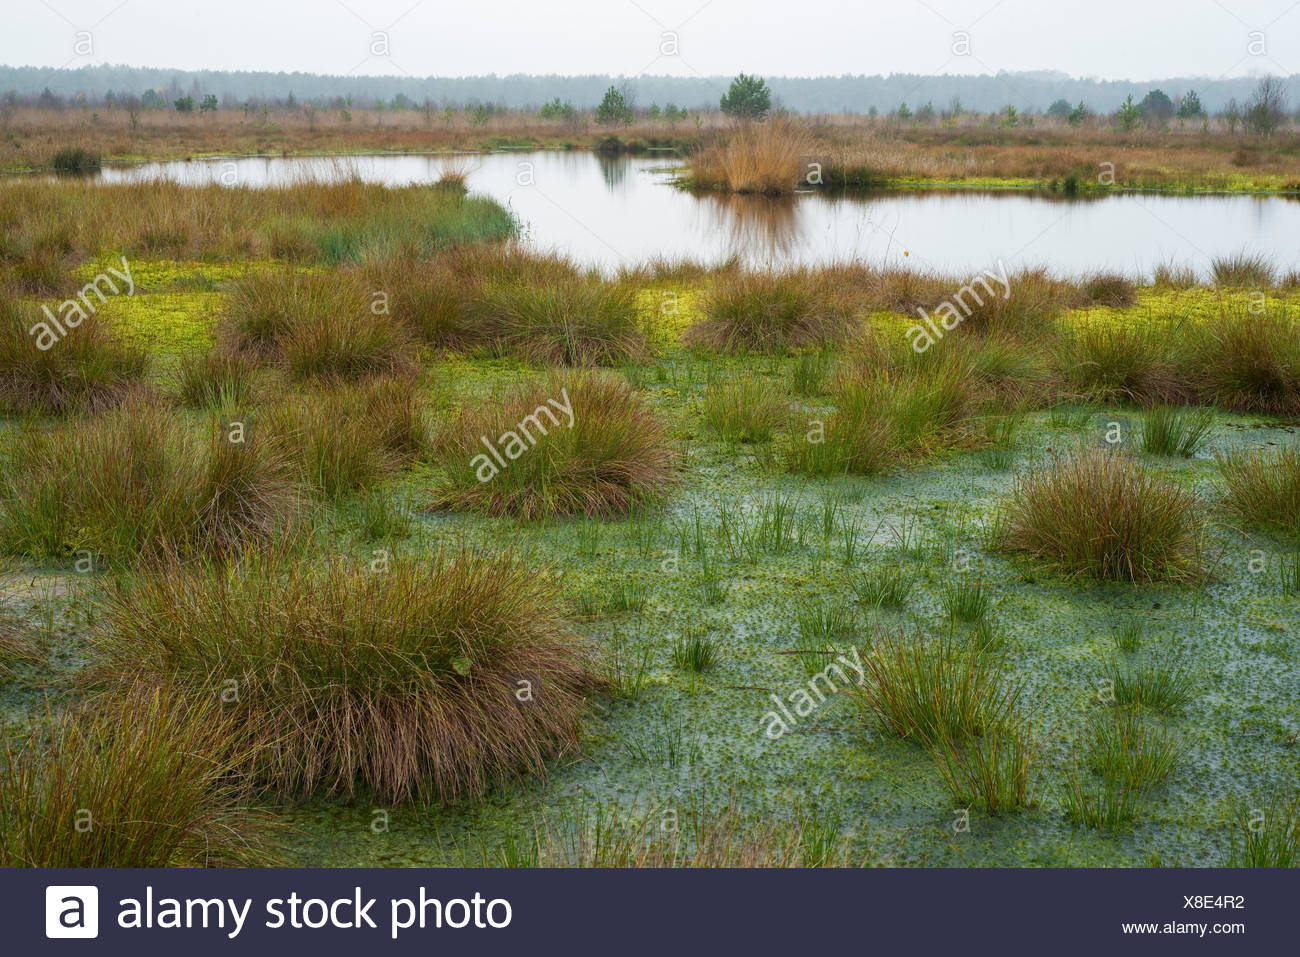 Peat Moss (Sphagnum sp.) and Soft Rush or Common Rush (Juncus effusus), Schweimker Moor Nature Reserve, Lower Saxony, Germany - Stock Image